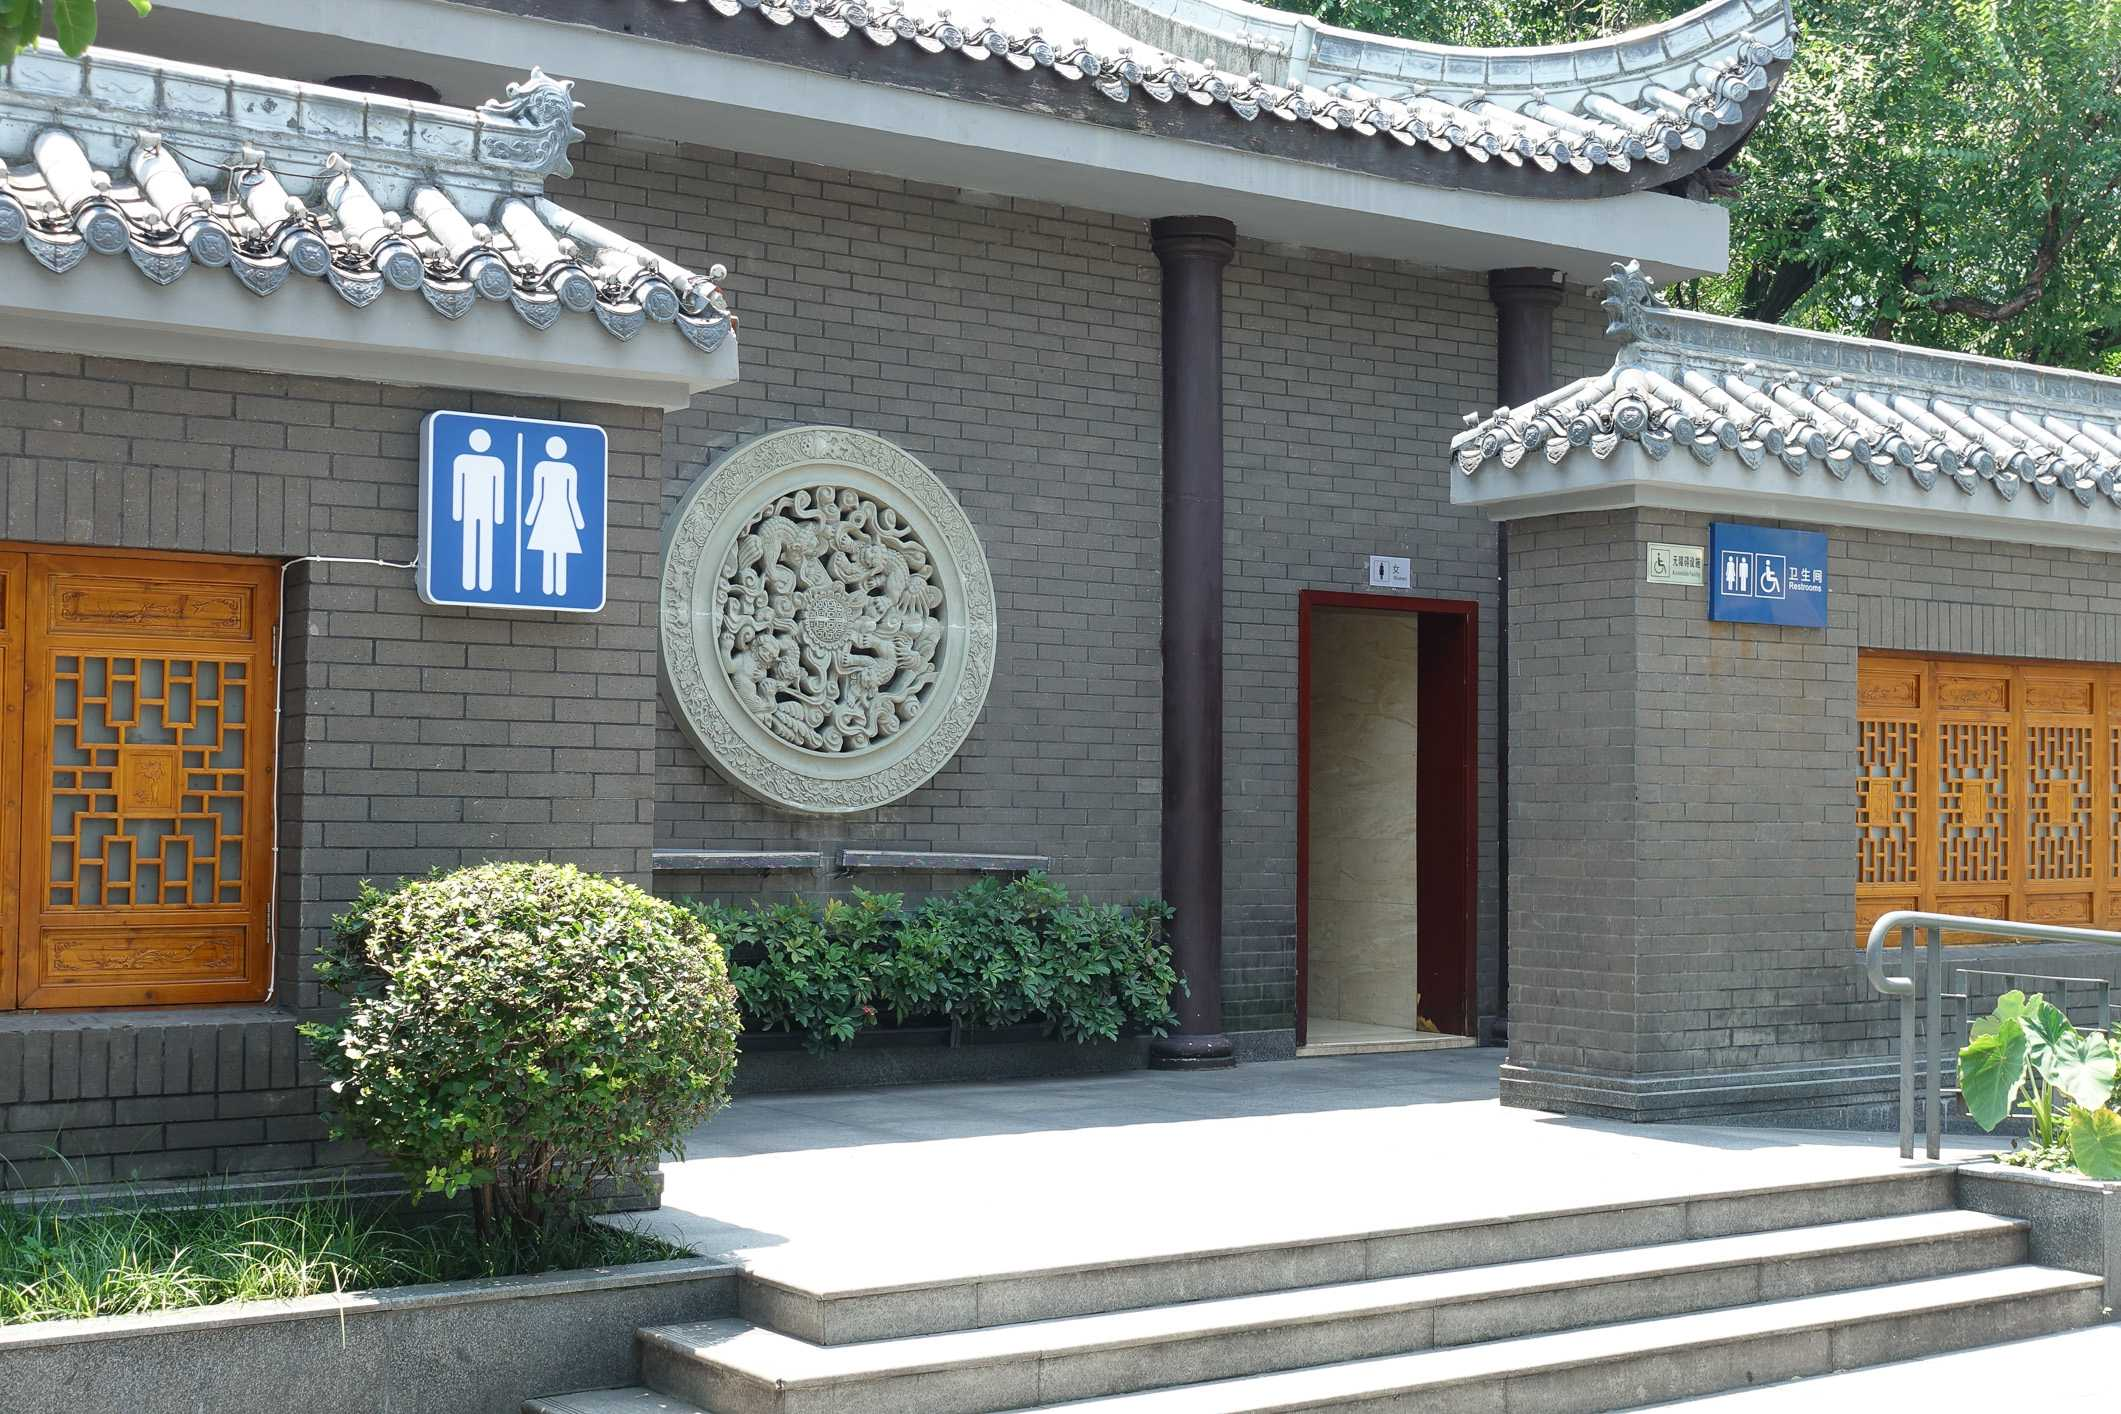 Public toilets in China